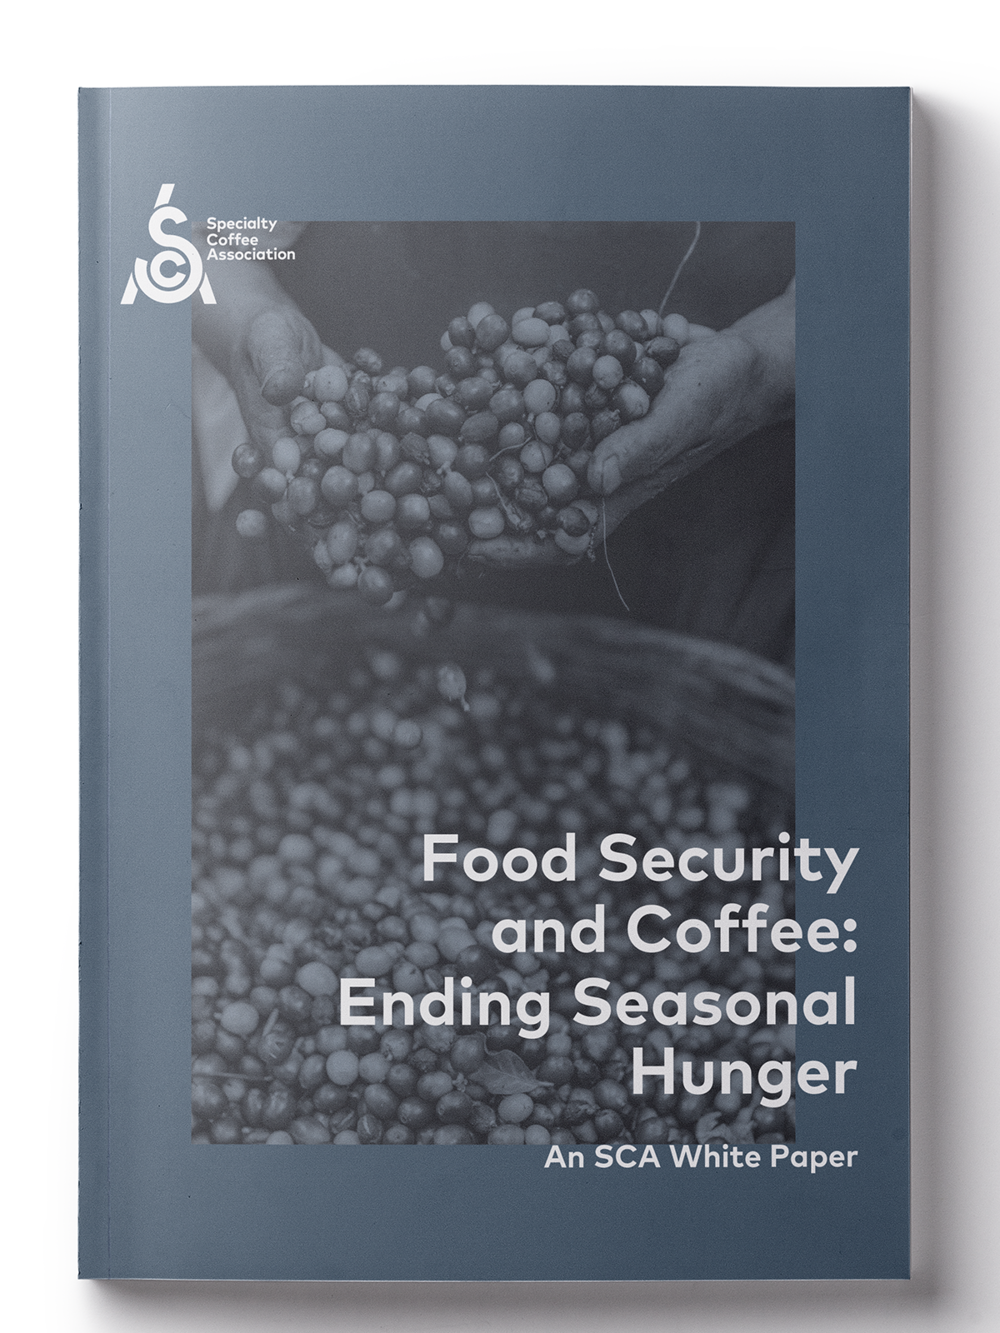 Food Security and Coffee: Ending Seasonal Hunger   An SCA White Paper   This paper provides an overview of hunger and food insecurity in the specialty coffee industry and outlines recommendations for solving the problem with the participation of all industry partners. Learn how and why seasonal hunger affects our industry and find out more about real projects you can get involved with to actively work towards developing solutions   Download